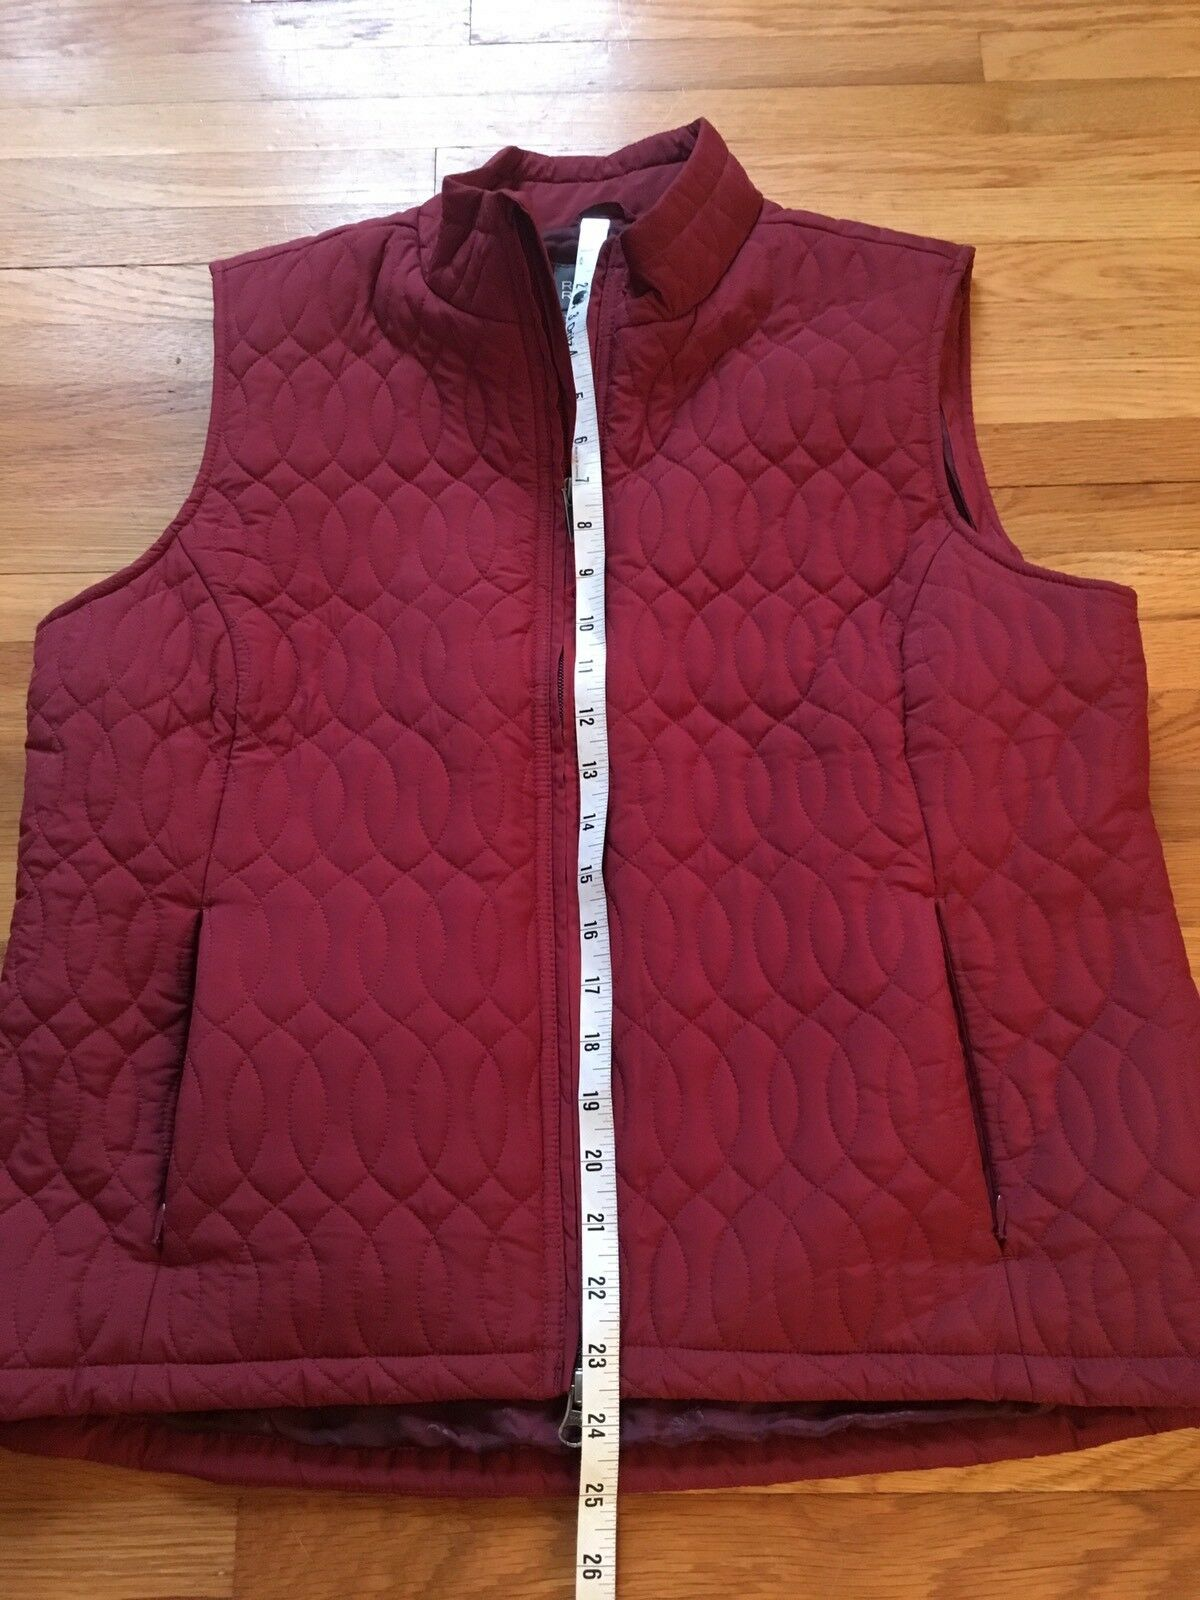 Women's ROYAL ROBBINS Puffy Quilted Vest     Large   Red b026de